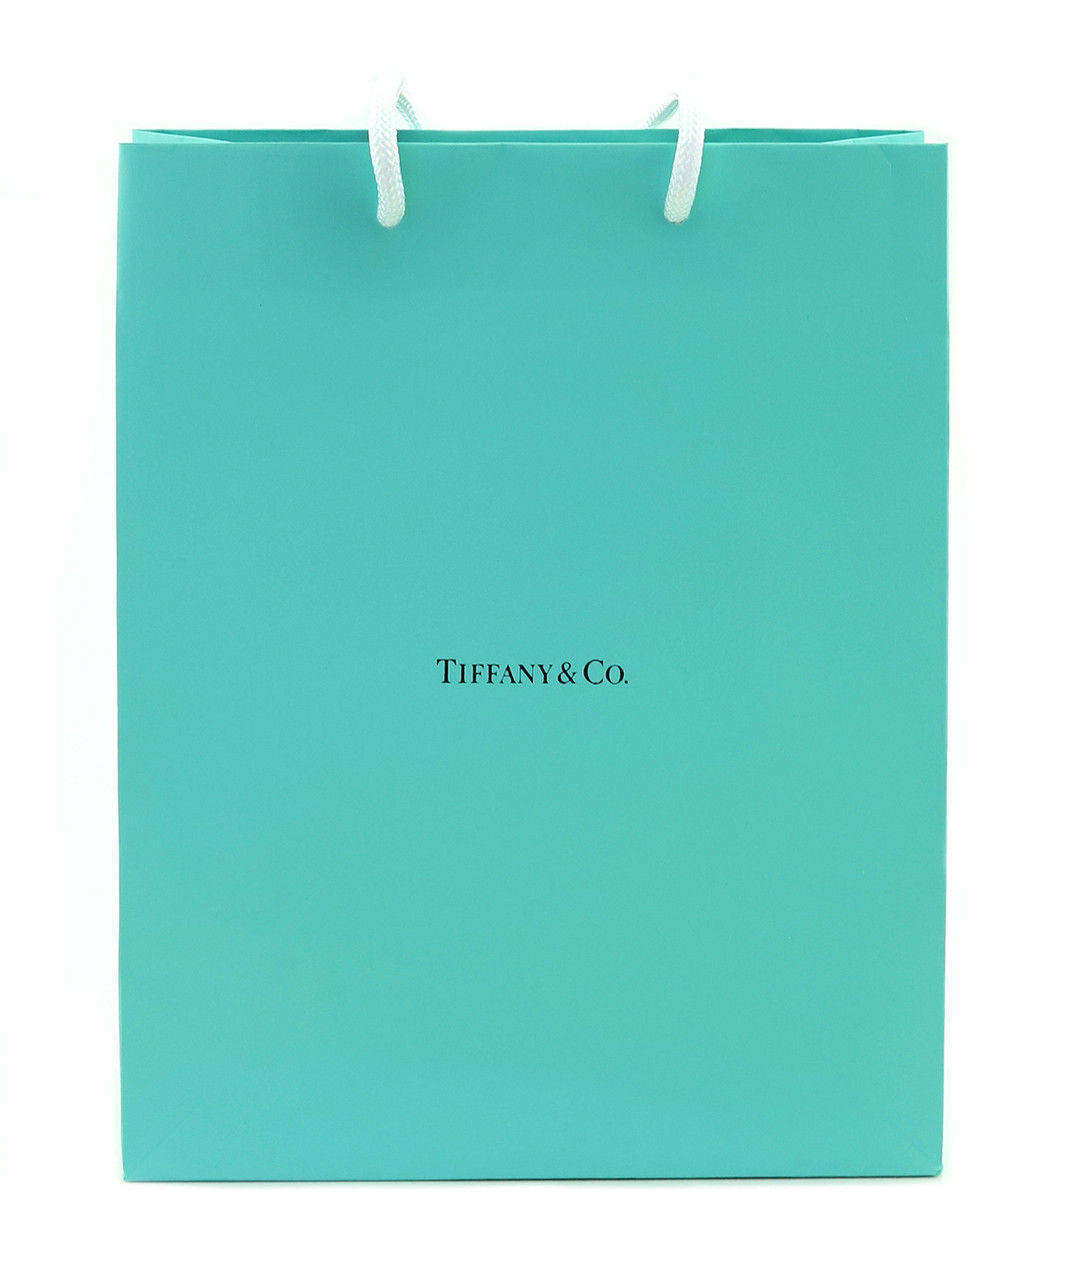 Accessories Tiffany & Co. Shopping Bag